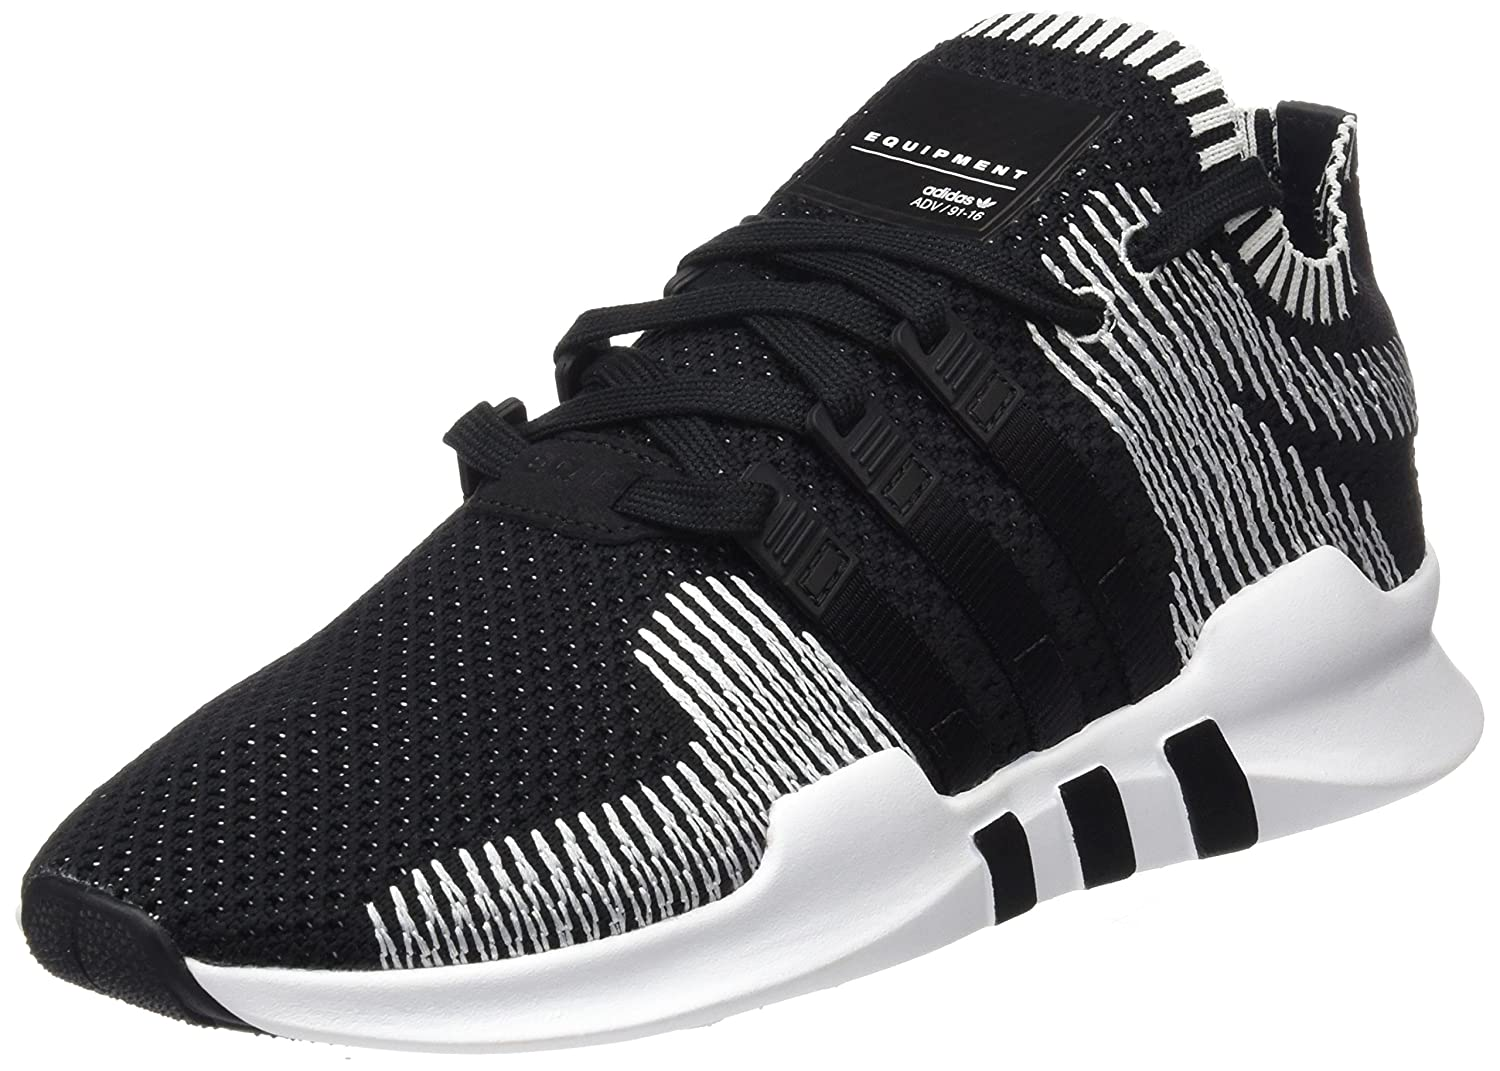 outlet store 487b2 87c5f adidas Originals EQT Support ADV Primeknit Shoes 11.5 B(M ...